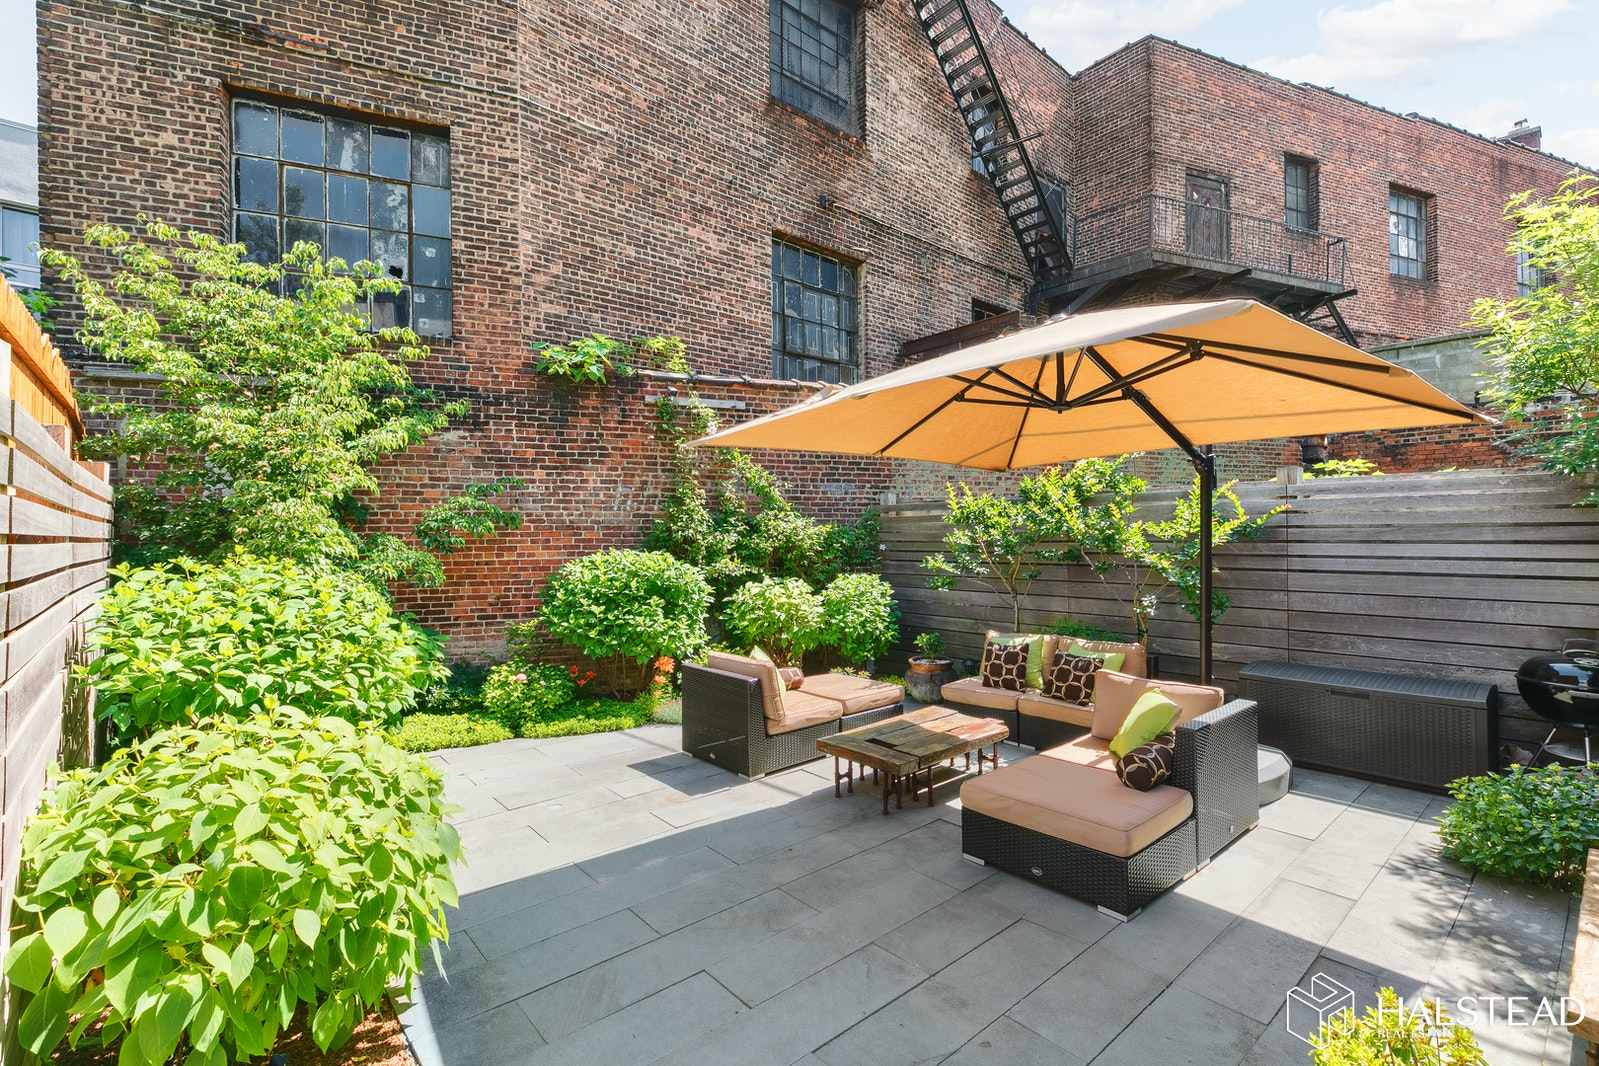 355 St Marks Avenue 2, Crown Heights, Brooklyn, NY, 11238, $1,995,000, Property For Sale, Halstead Real Estate, Photo 1